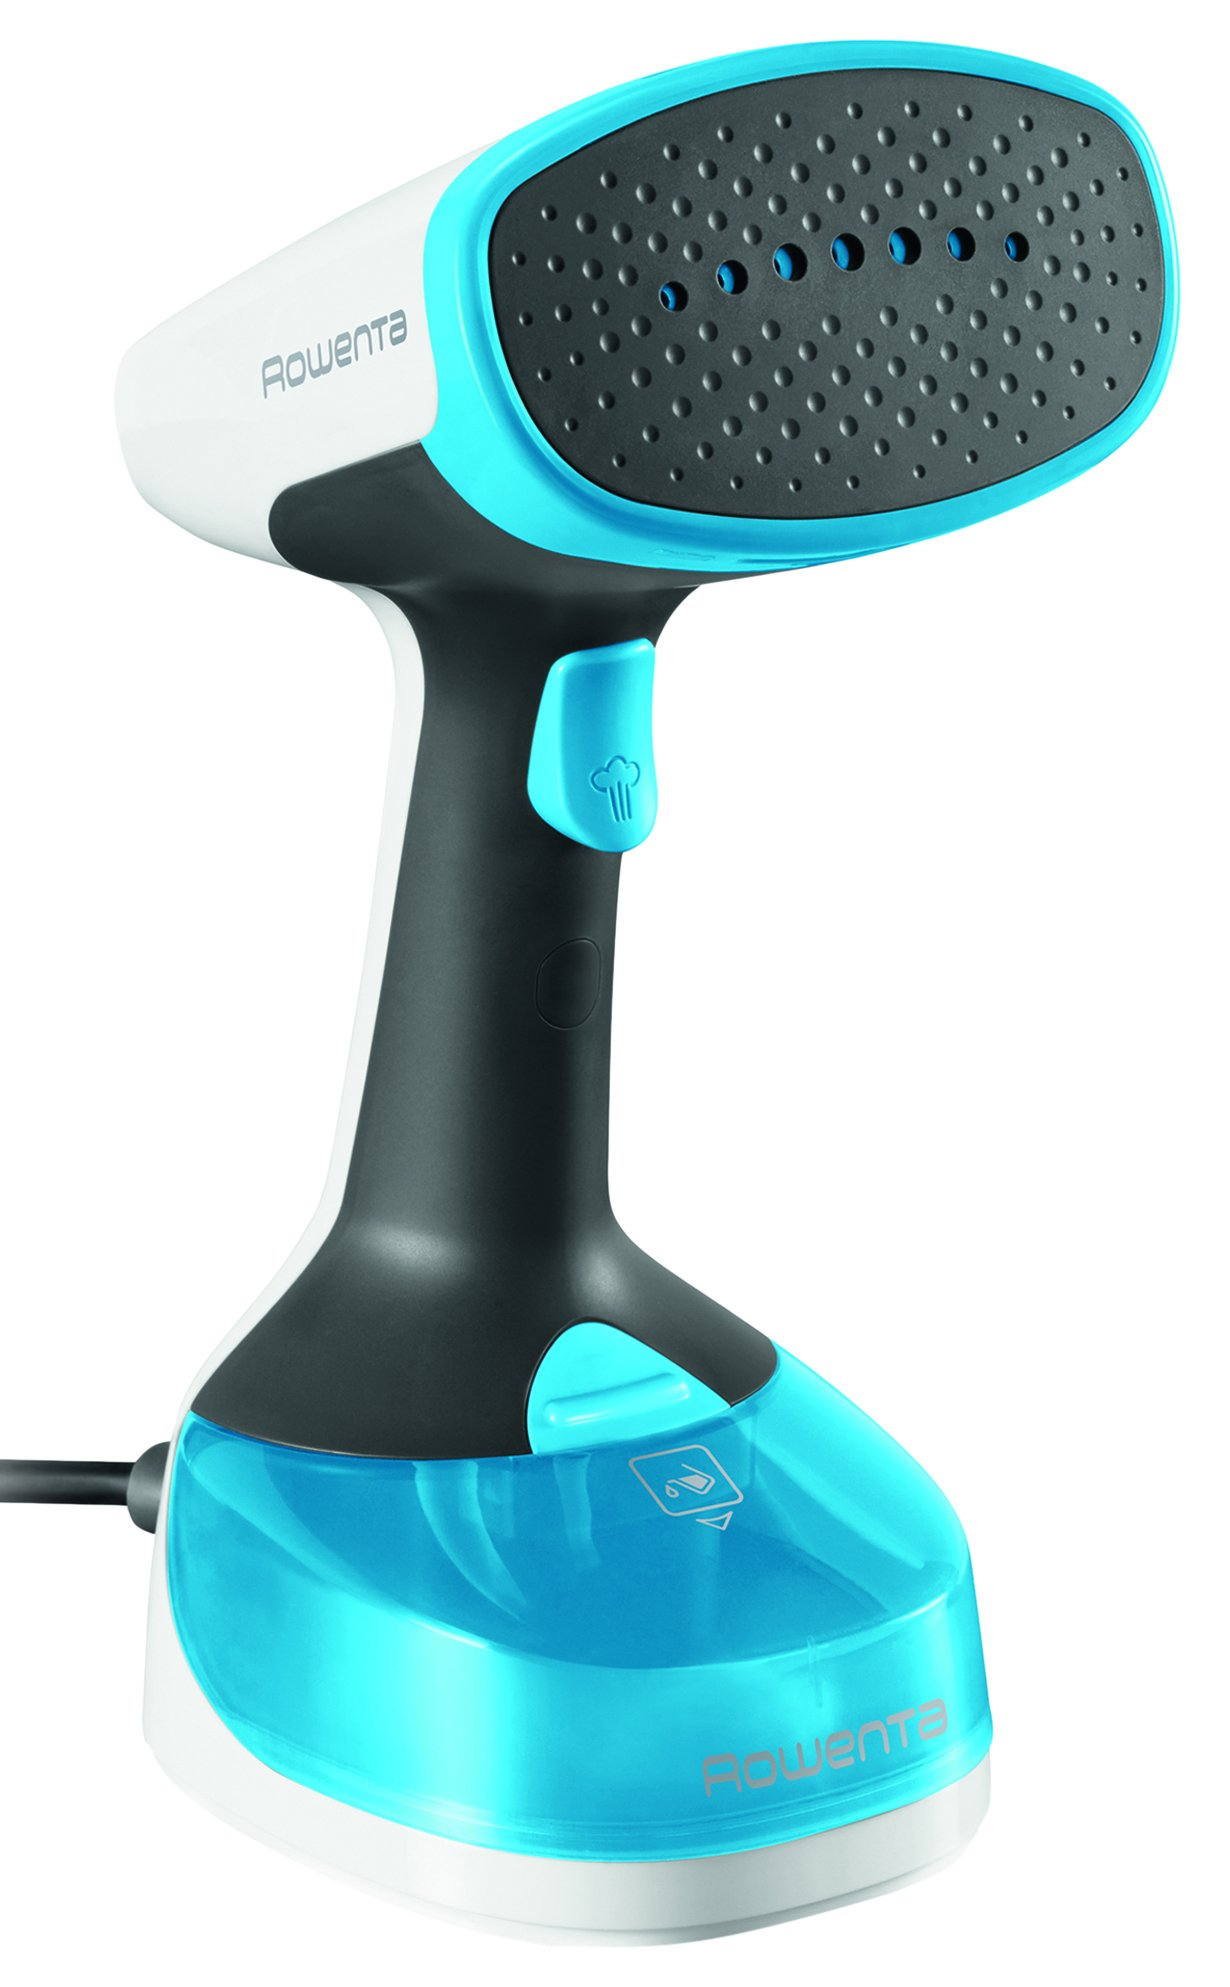 Rowenta Xcel Steamer, Handheld Steamer with Fabric Brush and Steam Bonnet, Blue